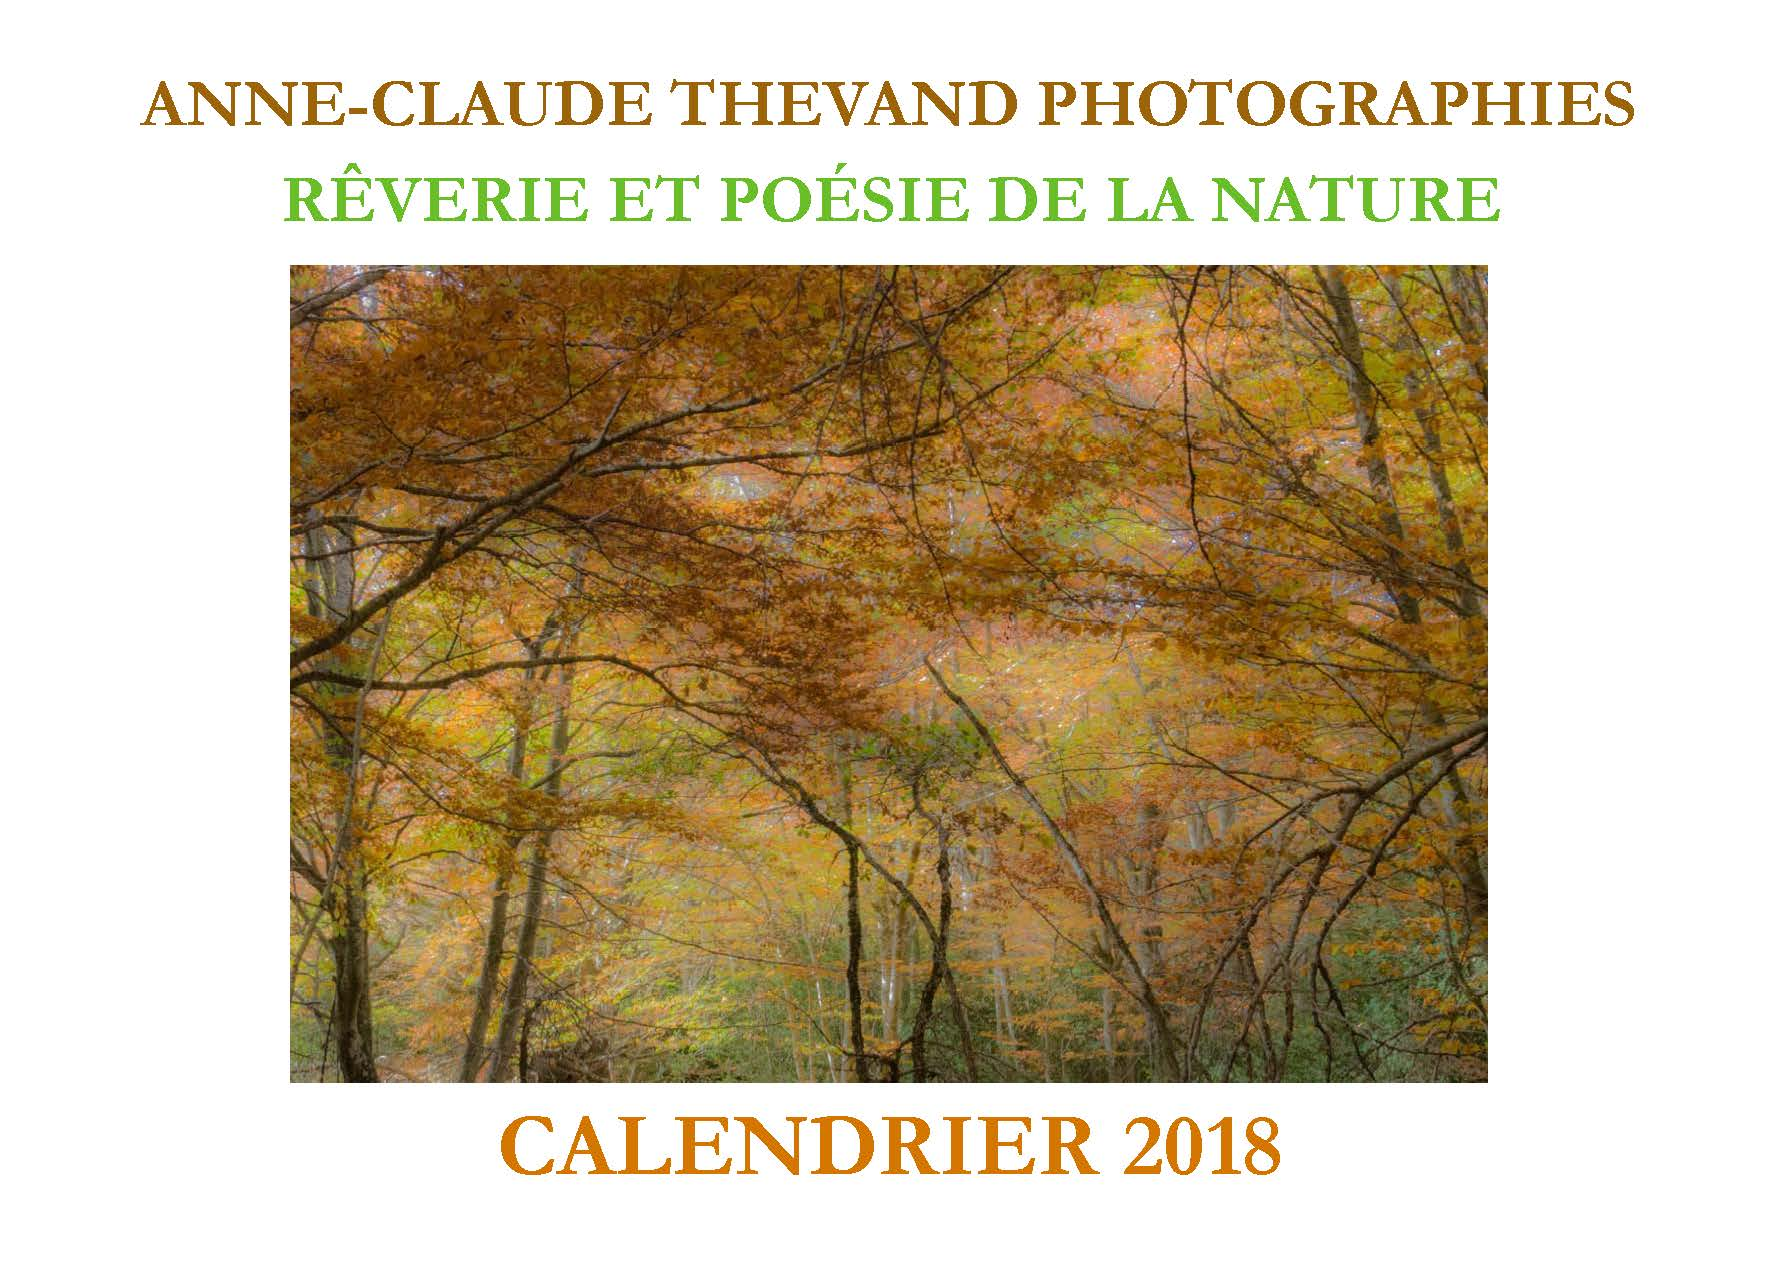 Calendrier 2018 Anne-Claude THEVAND